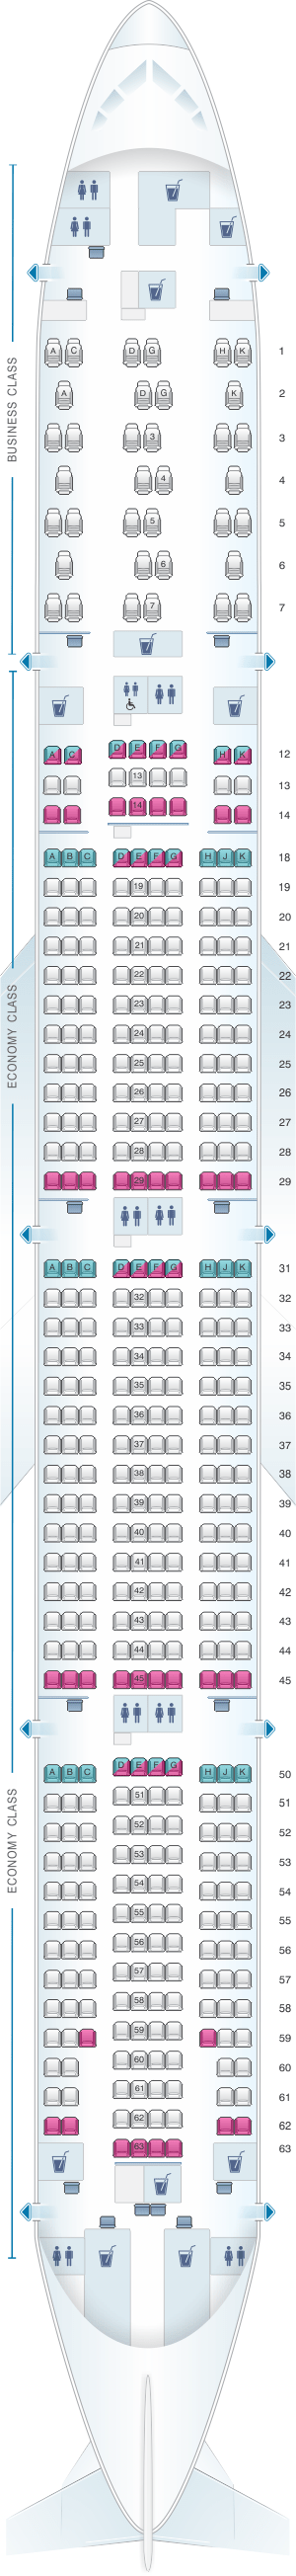 Seat Map For Air Canada Boeing B777 300er 77w North America Layout 2